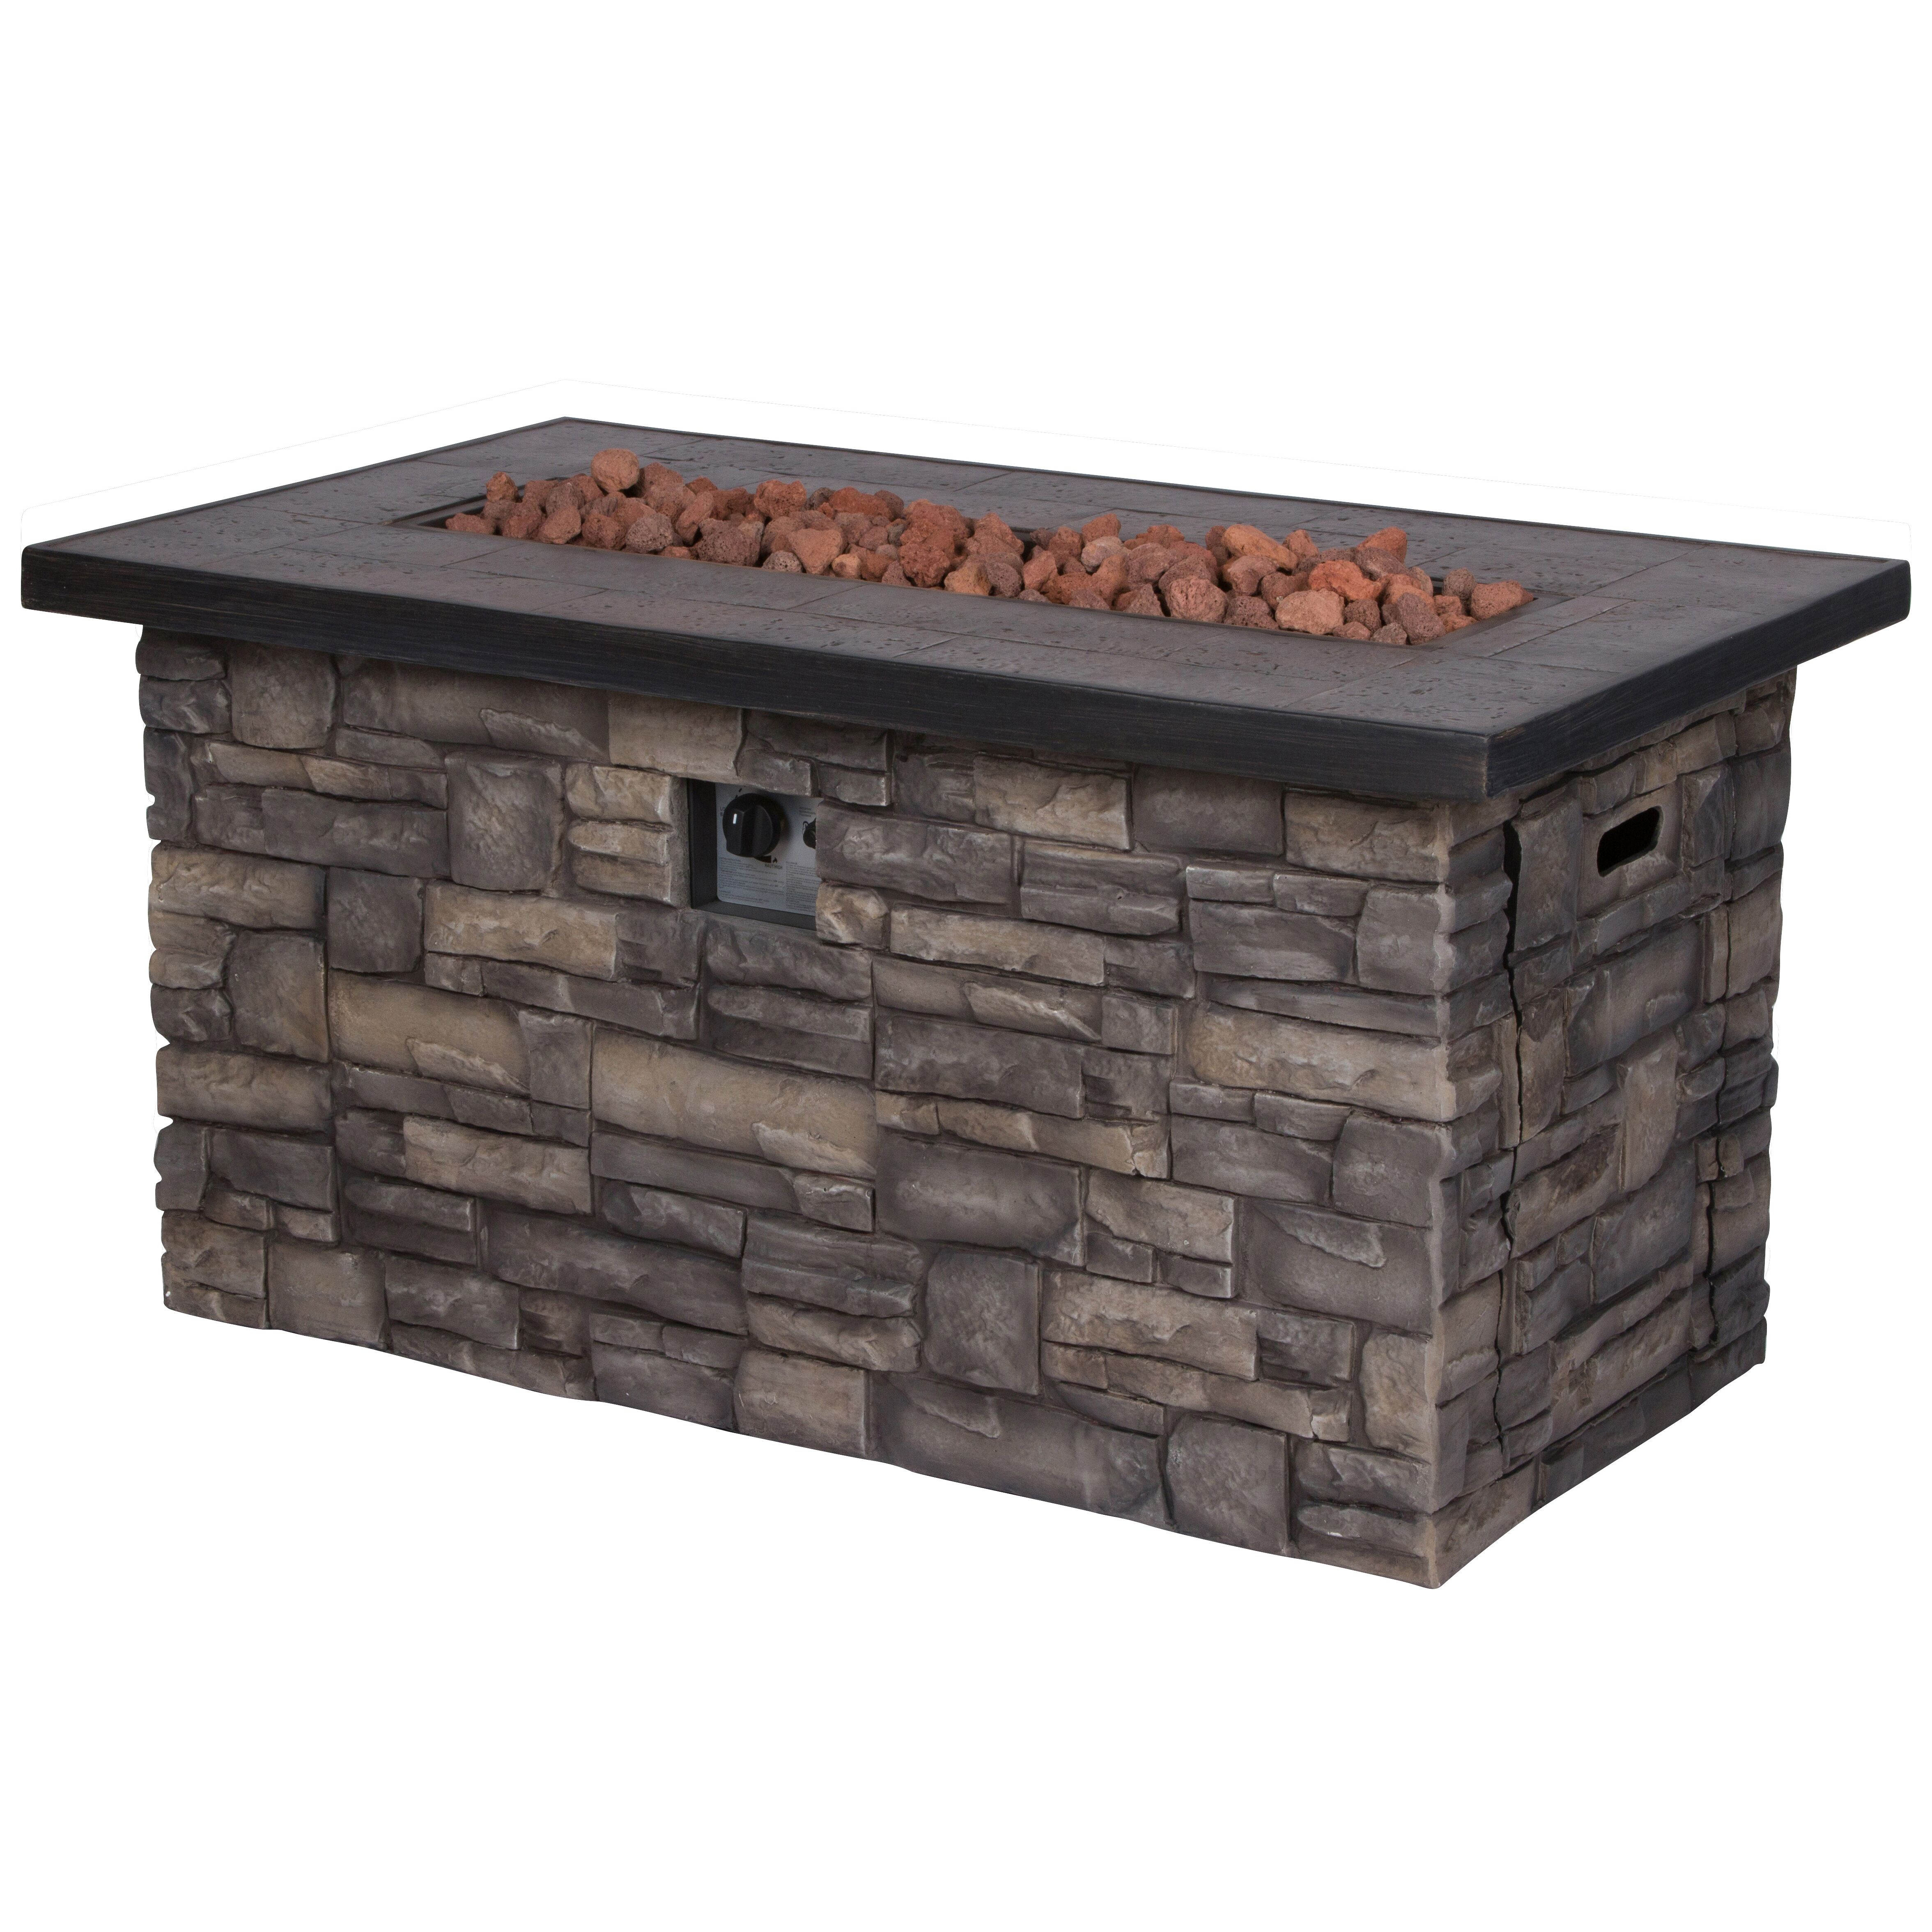 Shine Sevilla Stone Outdoor Rectangle Fire Pit Table With Lava Rocks